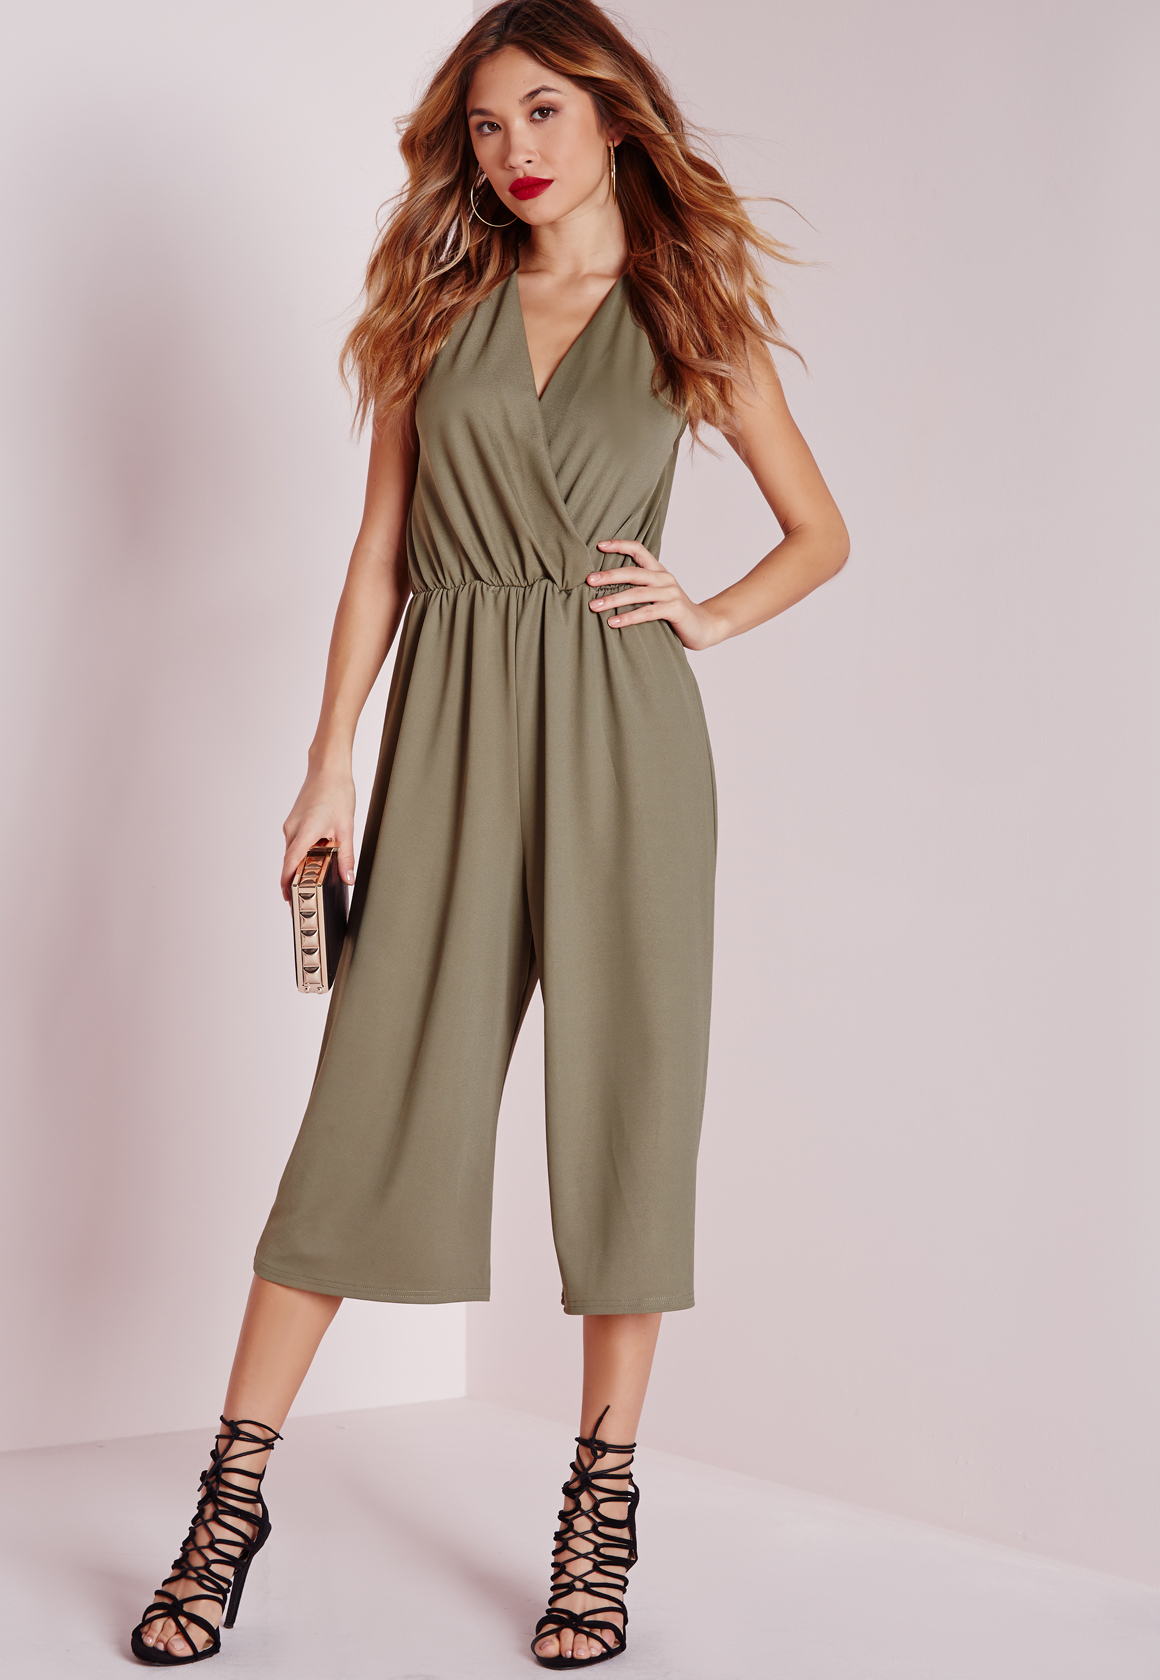 505743fa0b93 Missguided Wrap Front Culotte Jumpsuit Khaki in Natural - Lyst